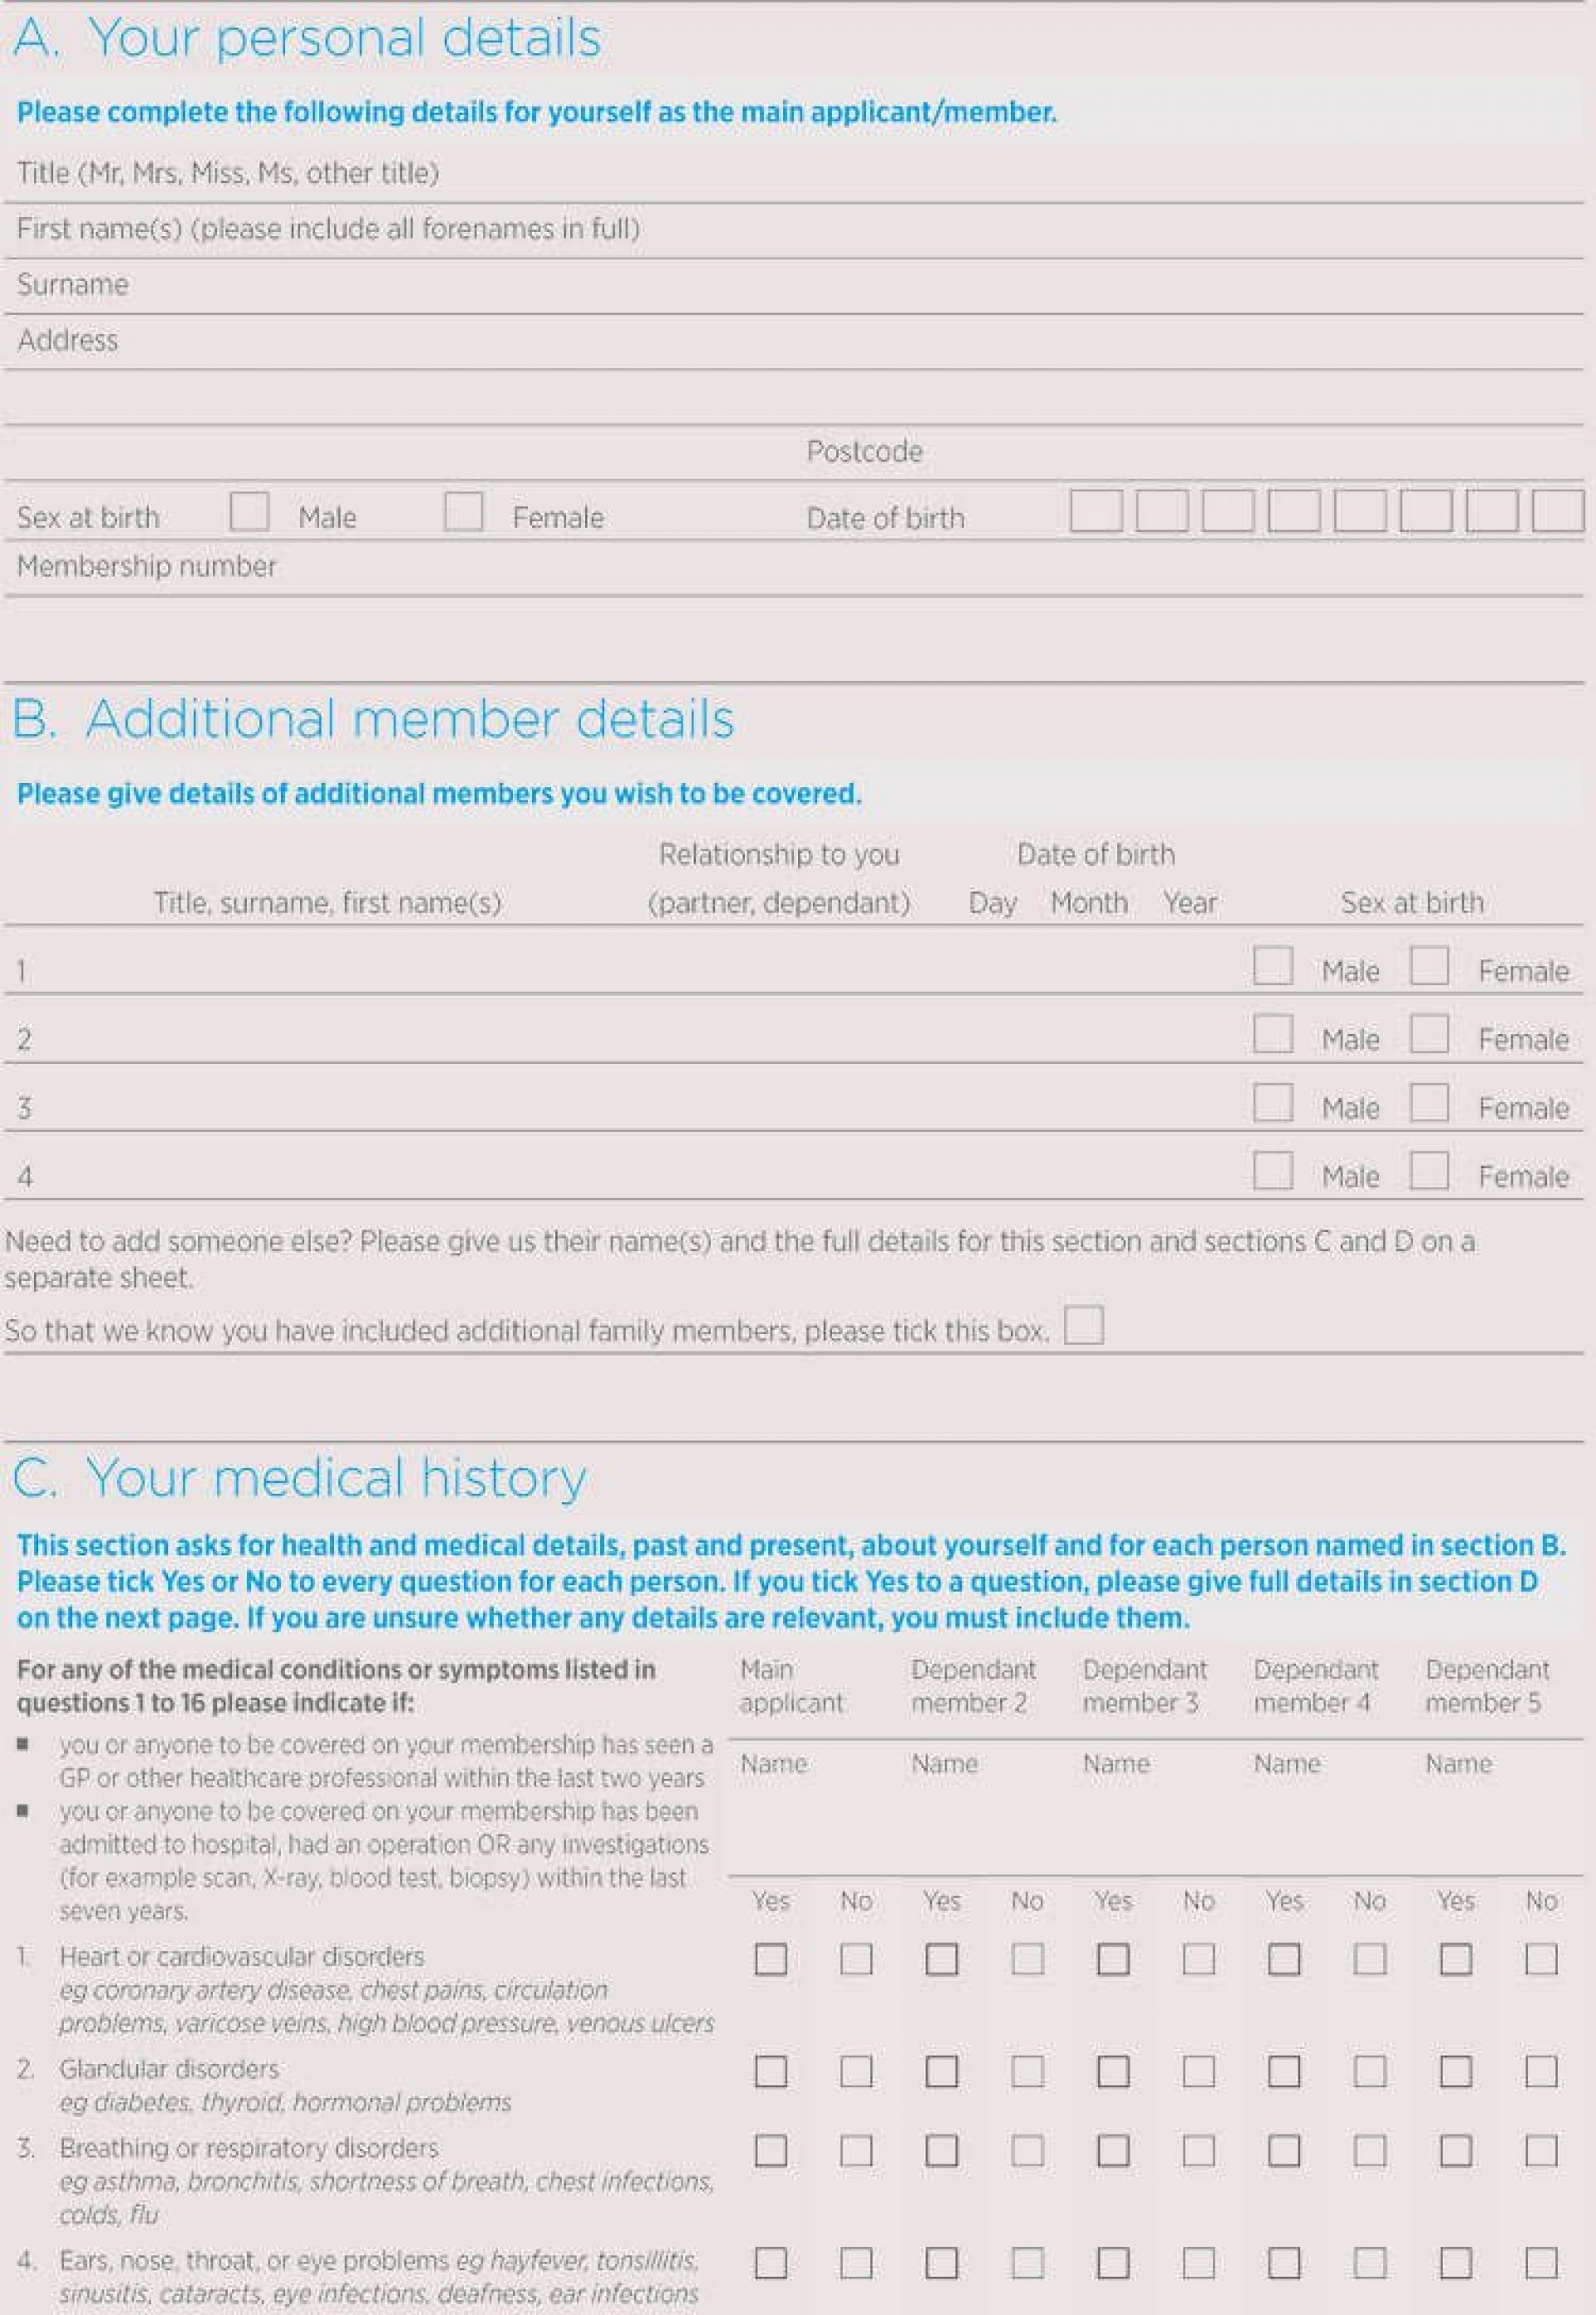 008 Awful Family Medical History Template Concept  Questionnaire Free Excel1920